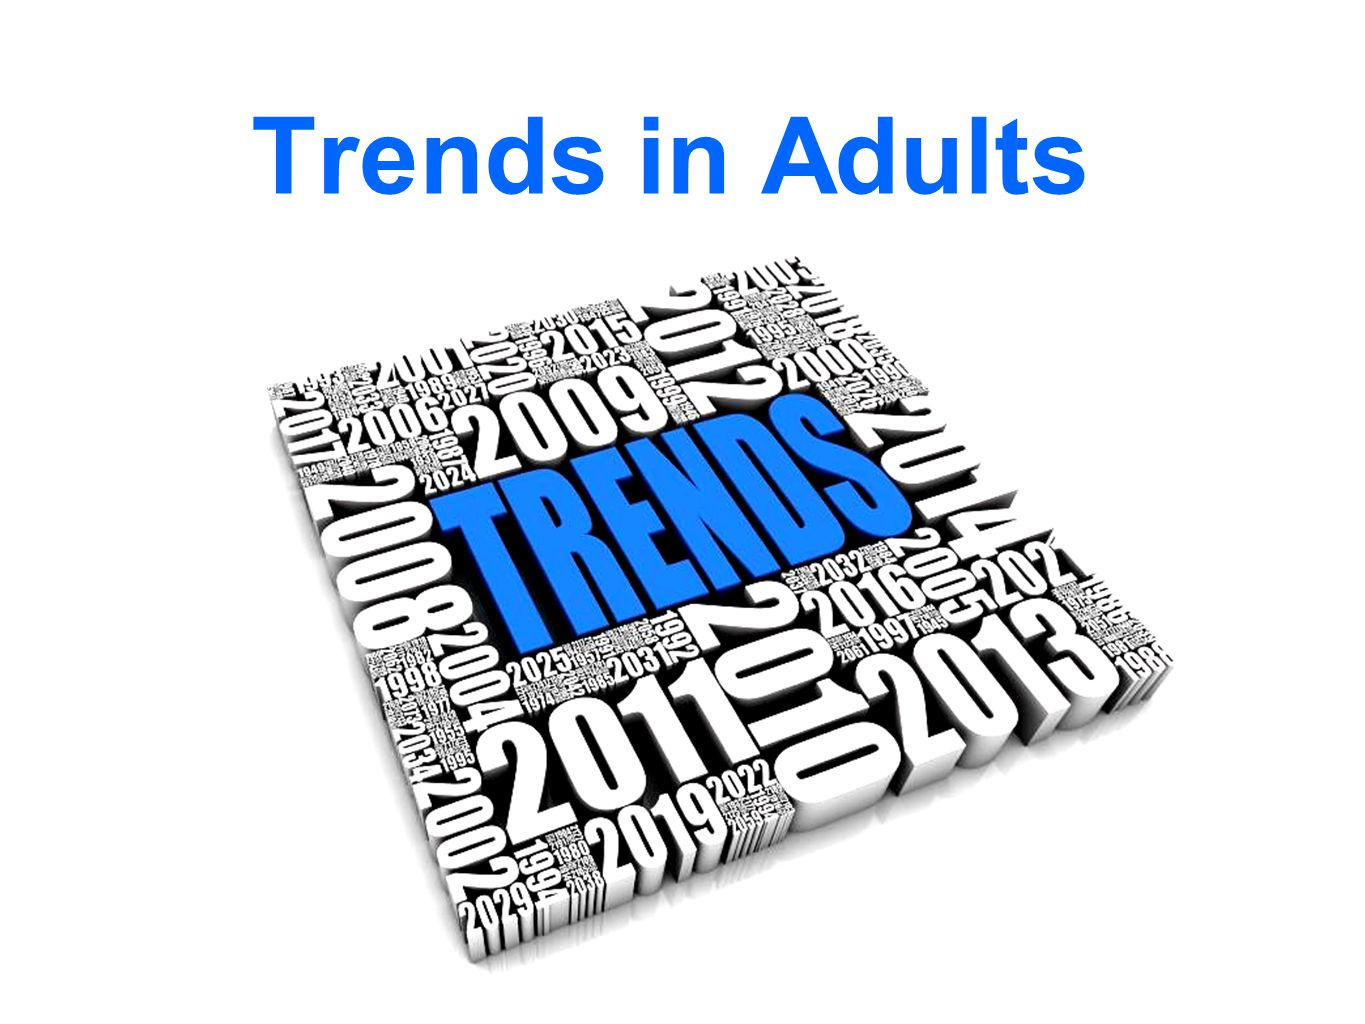 Trends in Adults